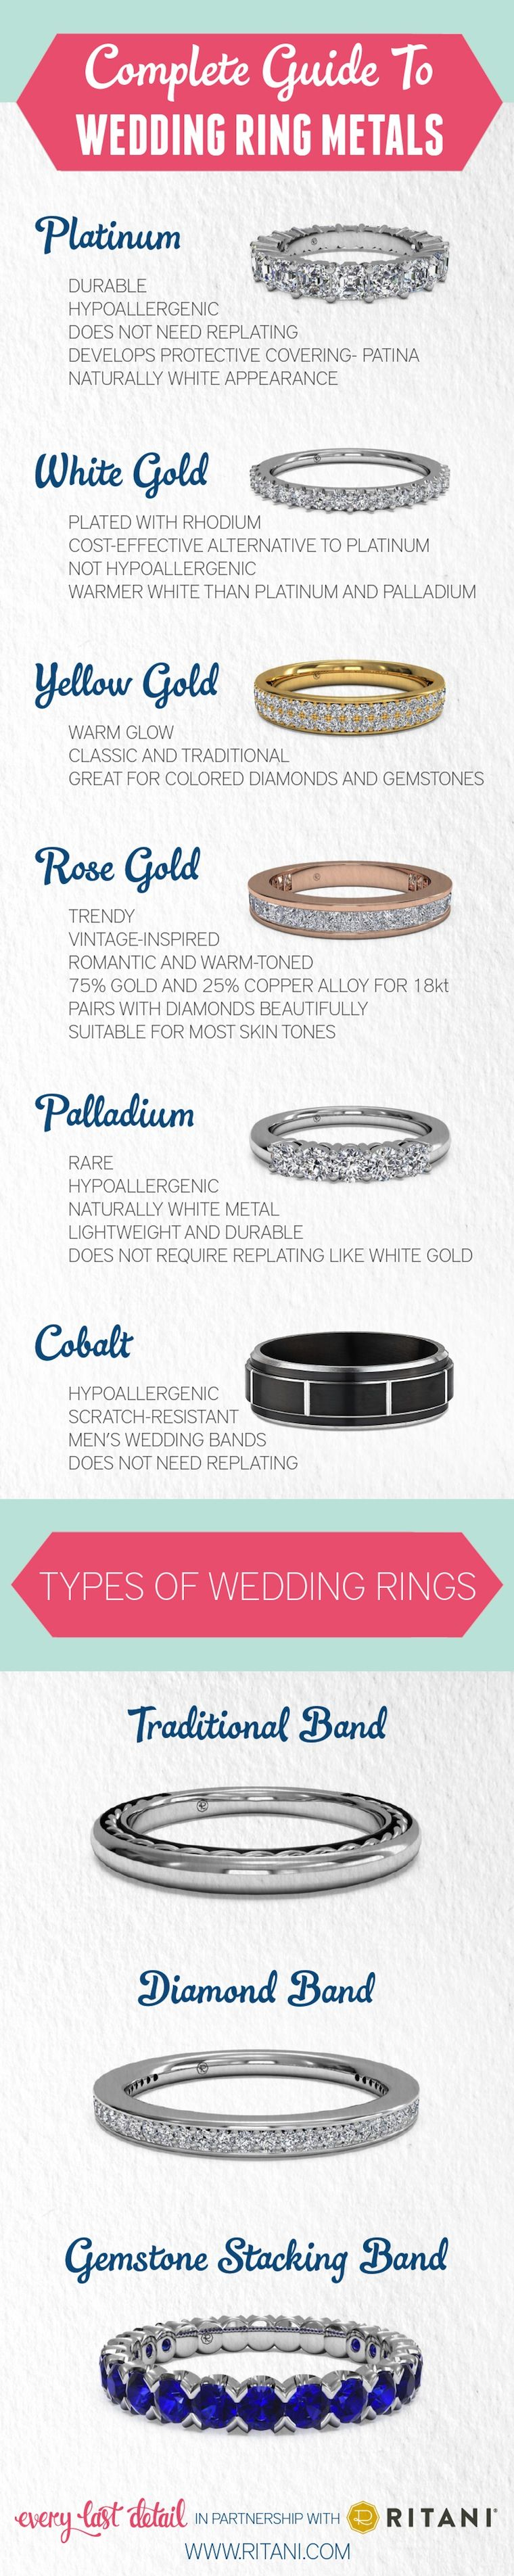 A Complete Guide To Wedding Ring Metals Via Theeld